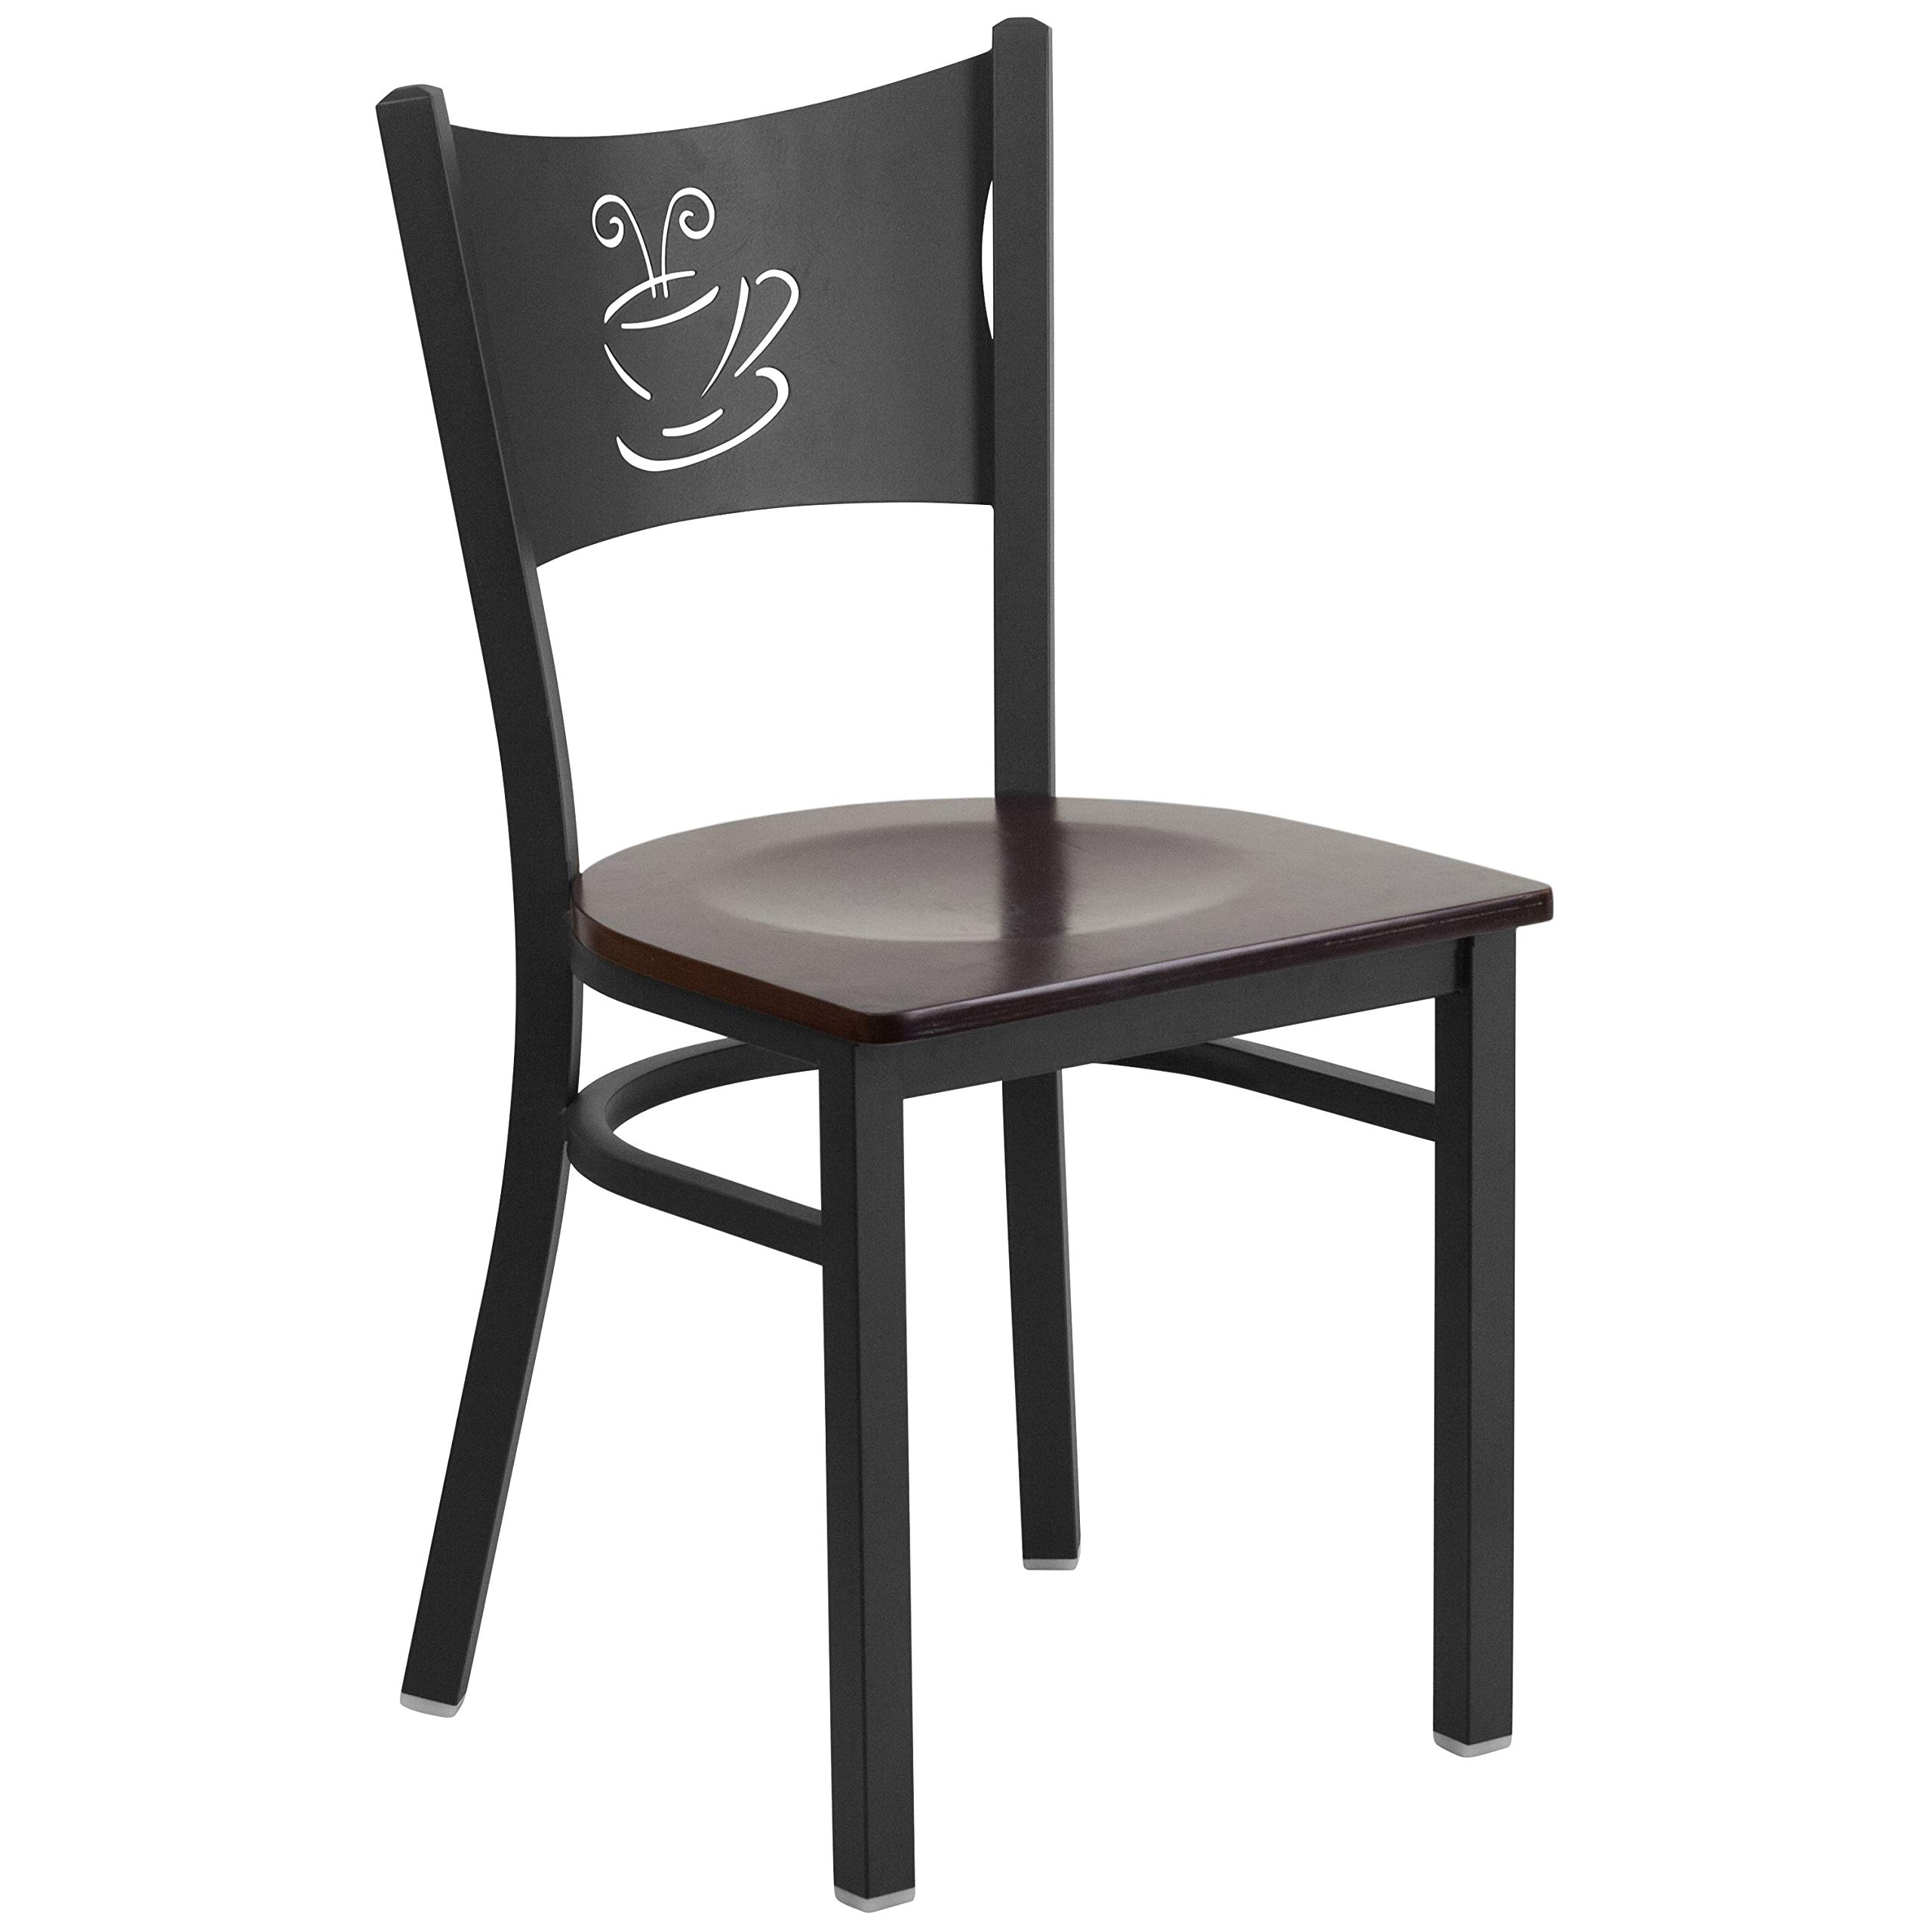 MFO Princeton Collection Black Coffee Back Metal Restaurant Chair - Walnut Wood Seat by My Friendly Office